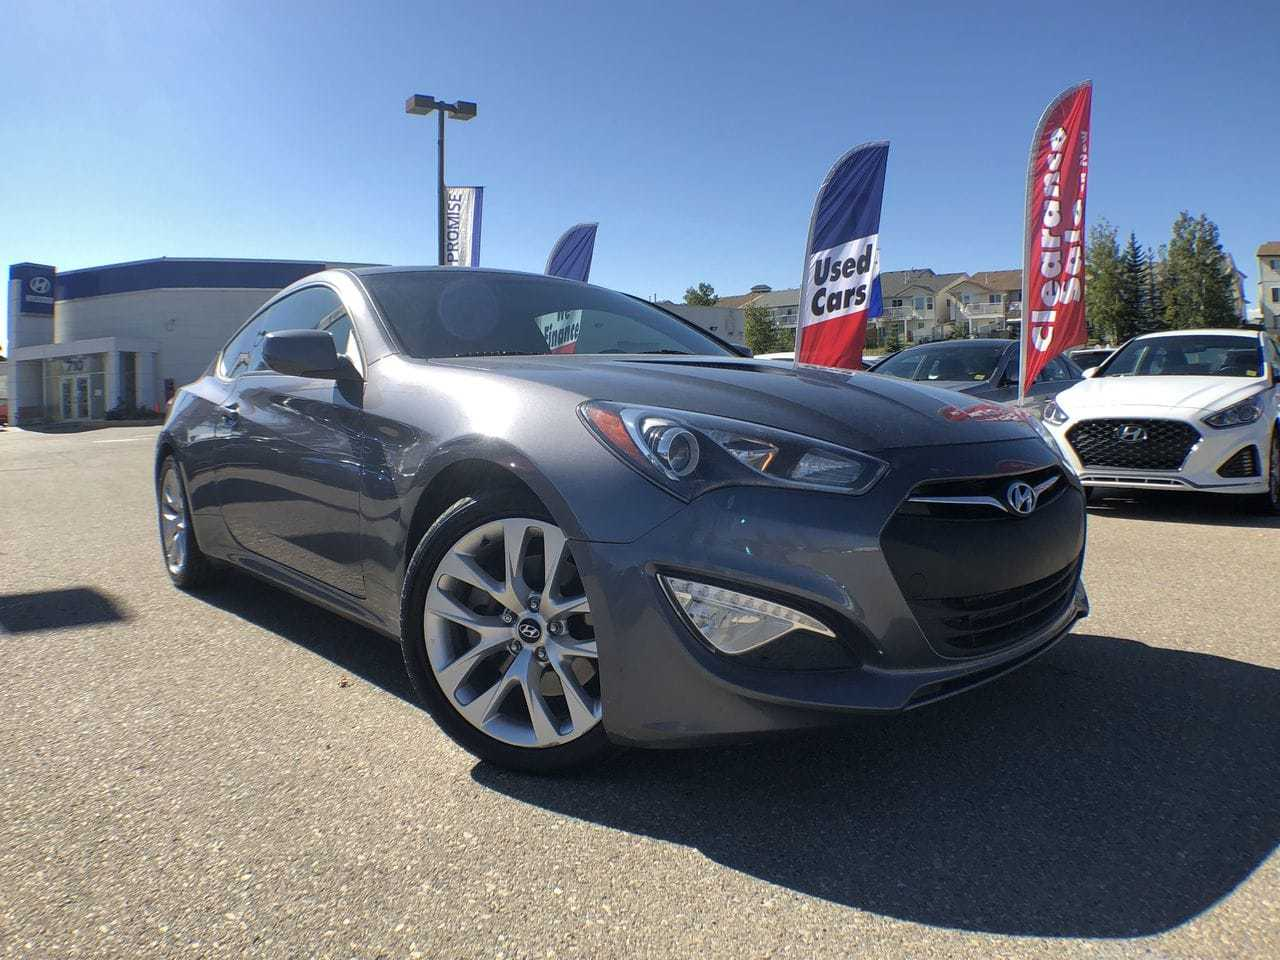 2014 Hyundai Genesis Coupe 2.0T Coupe